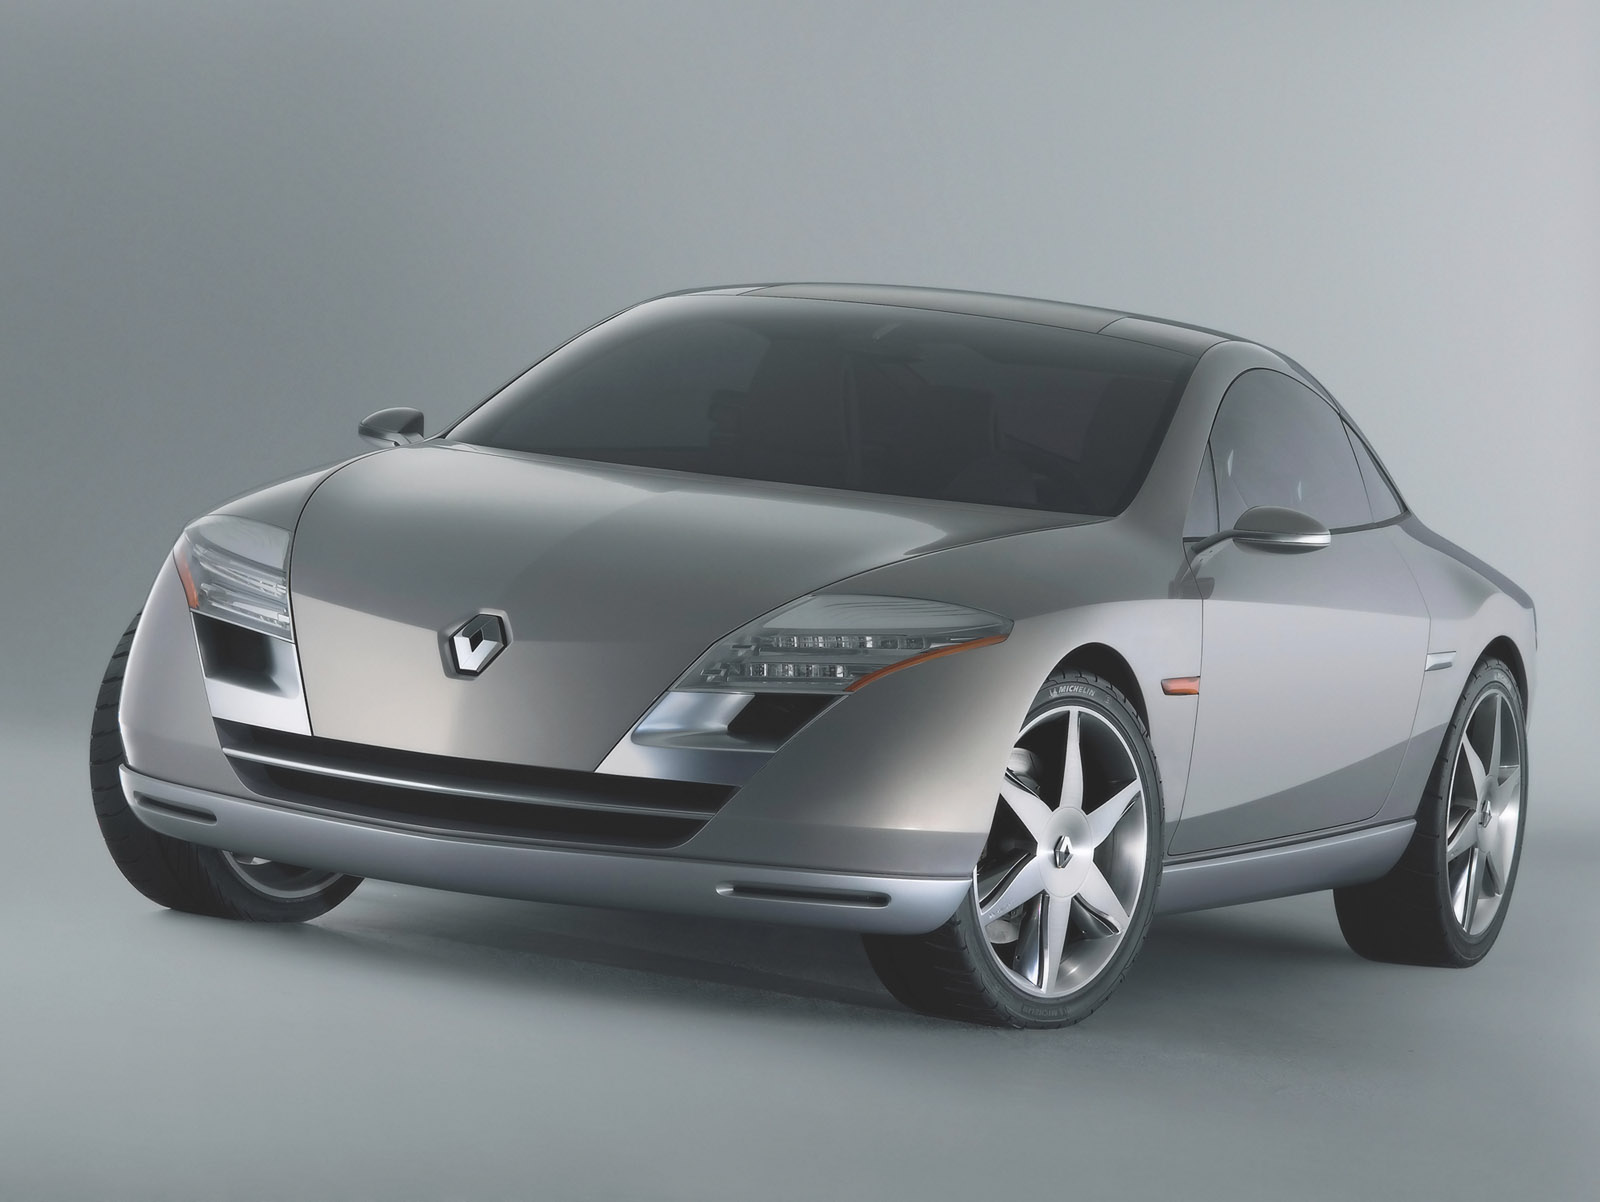 2004-Renault-Fluence-Concept-FA-Wheels-Turned-1600x1200